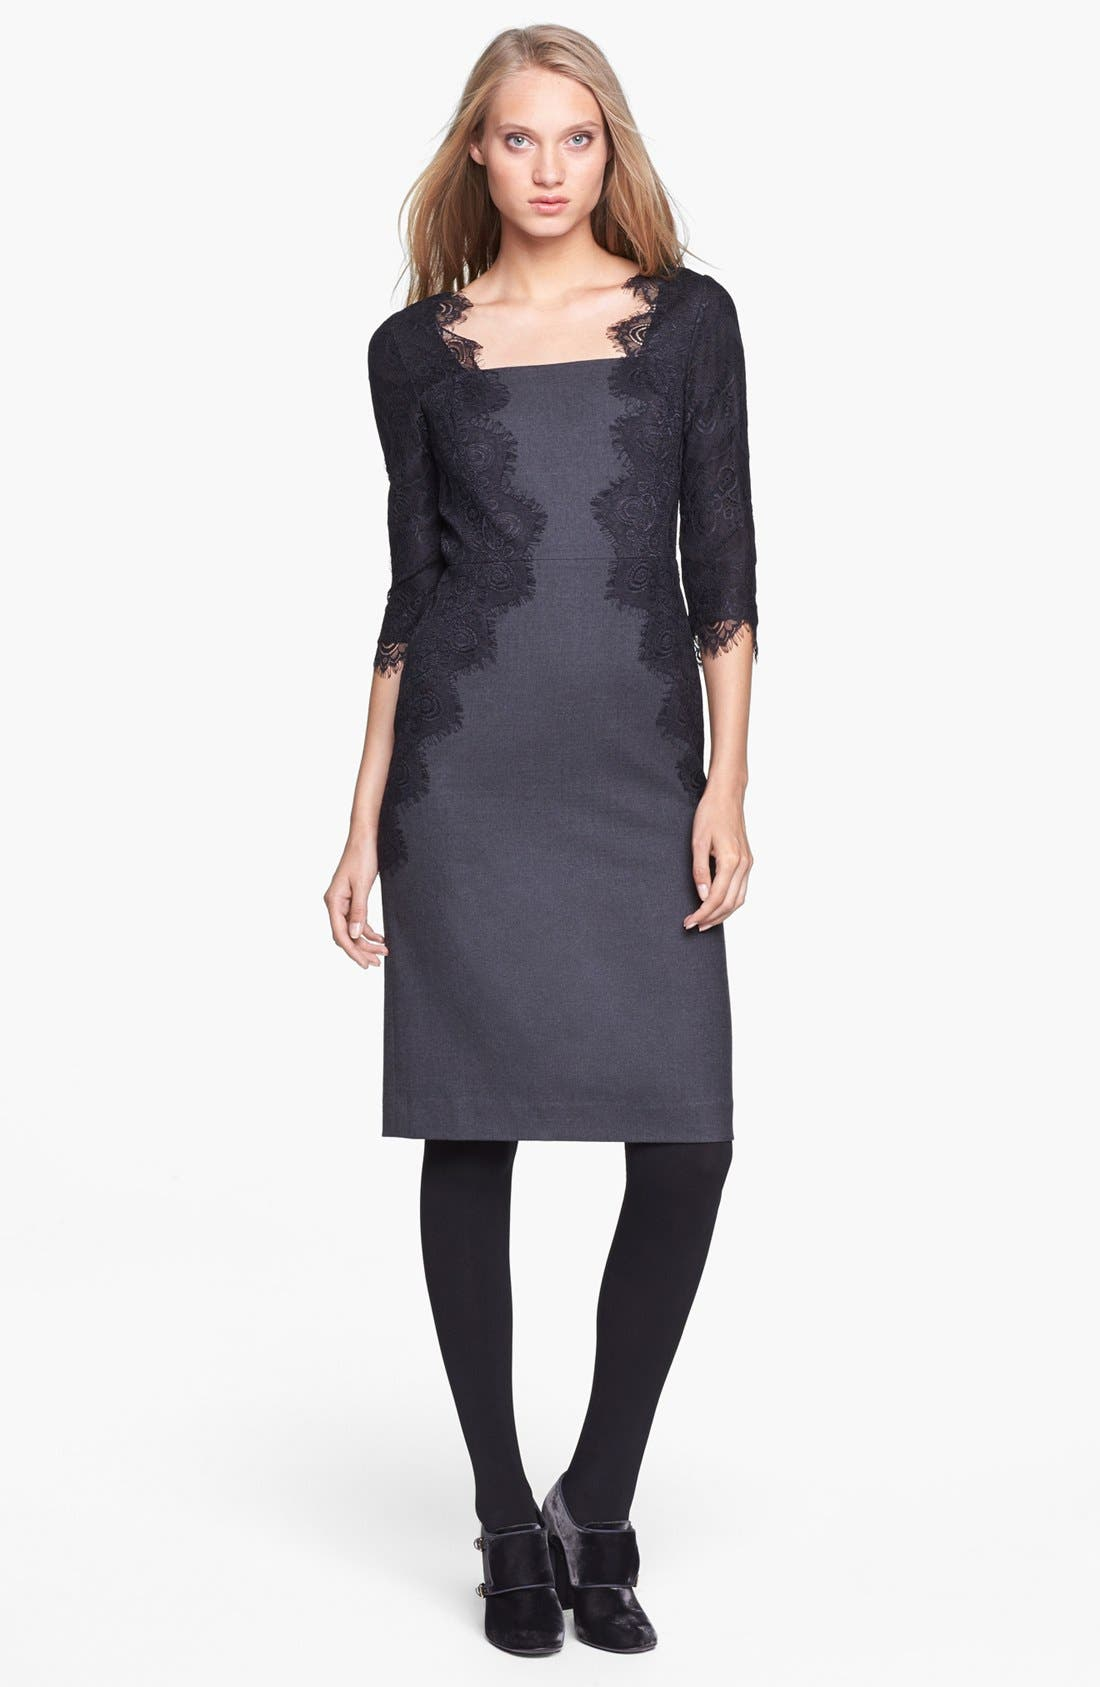 Alternate Image 1 Selected - Tory Burch 'Laney' Lace & Stretch Wool Sheath Dress